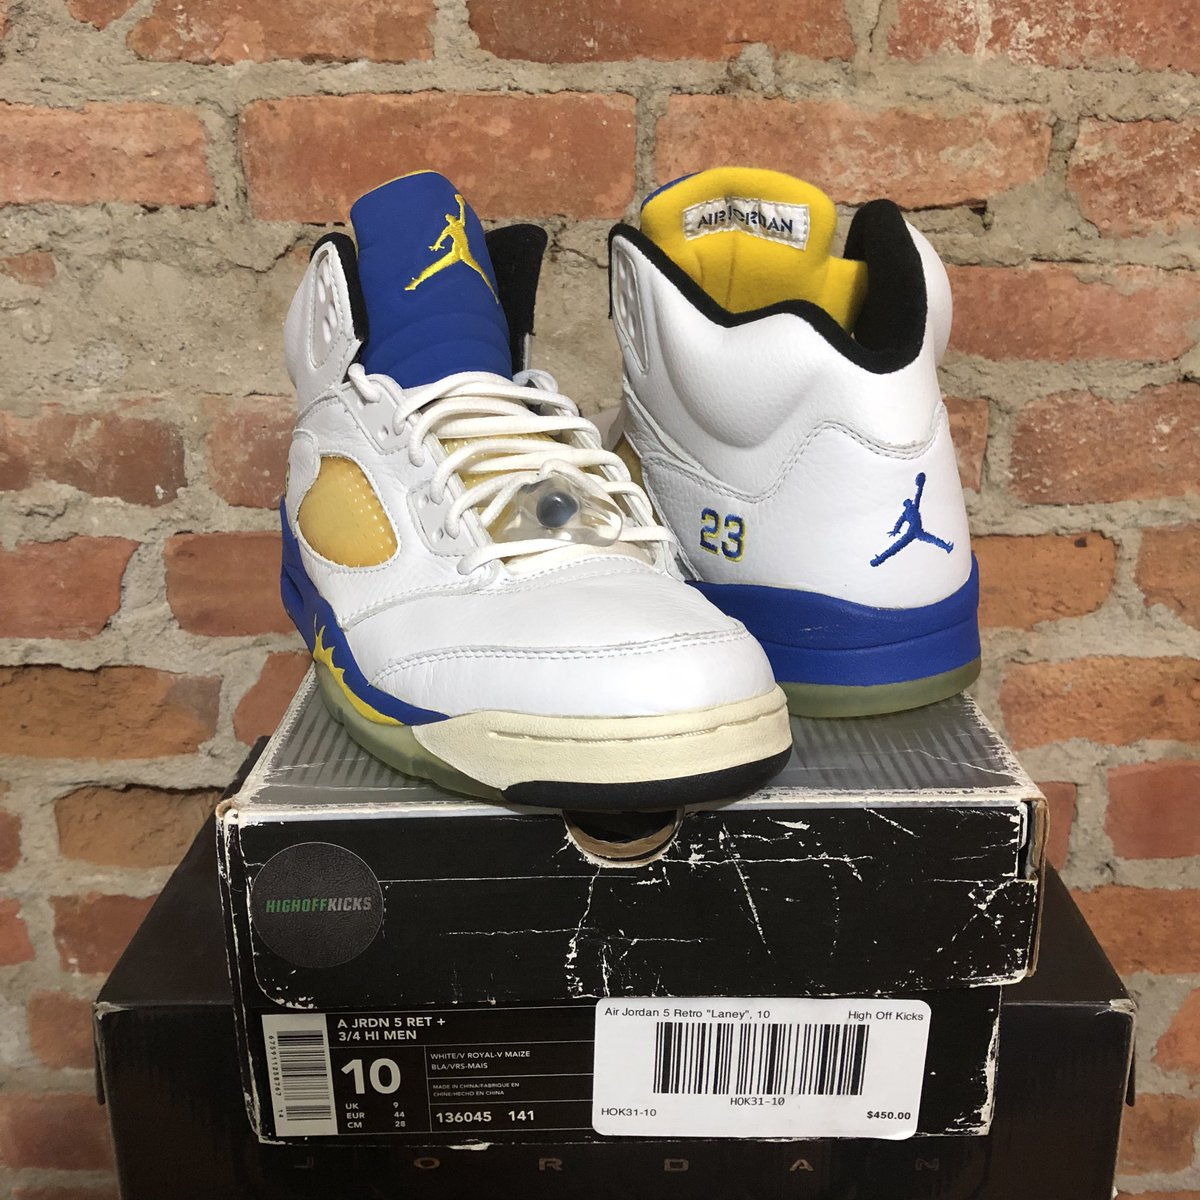 sneakers for cheap ecf76 307e2 DS Air Jordan 5 Retro 2000 Laney Sz 10 -  100 shipped! Small hairline crack  on midsoles. DM for picspic.twitter.com eyUrU5GH2I